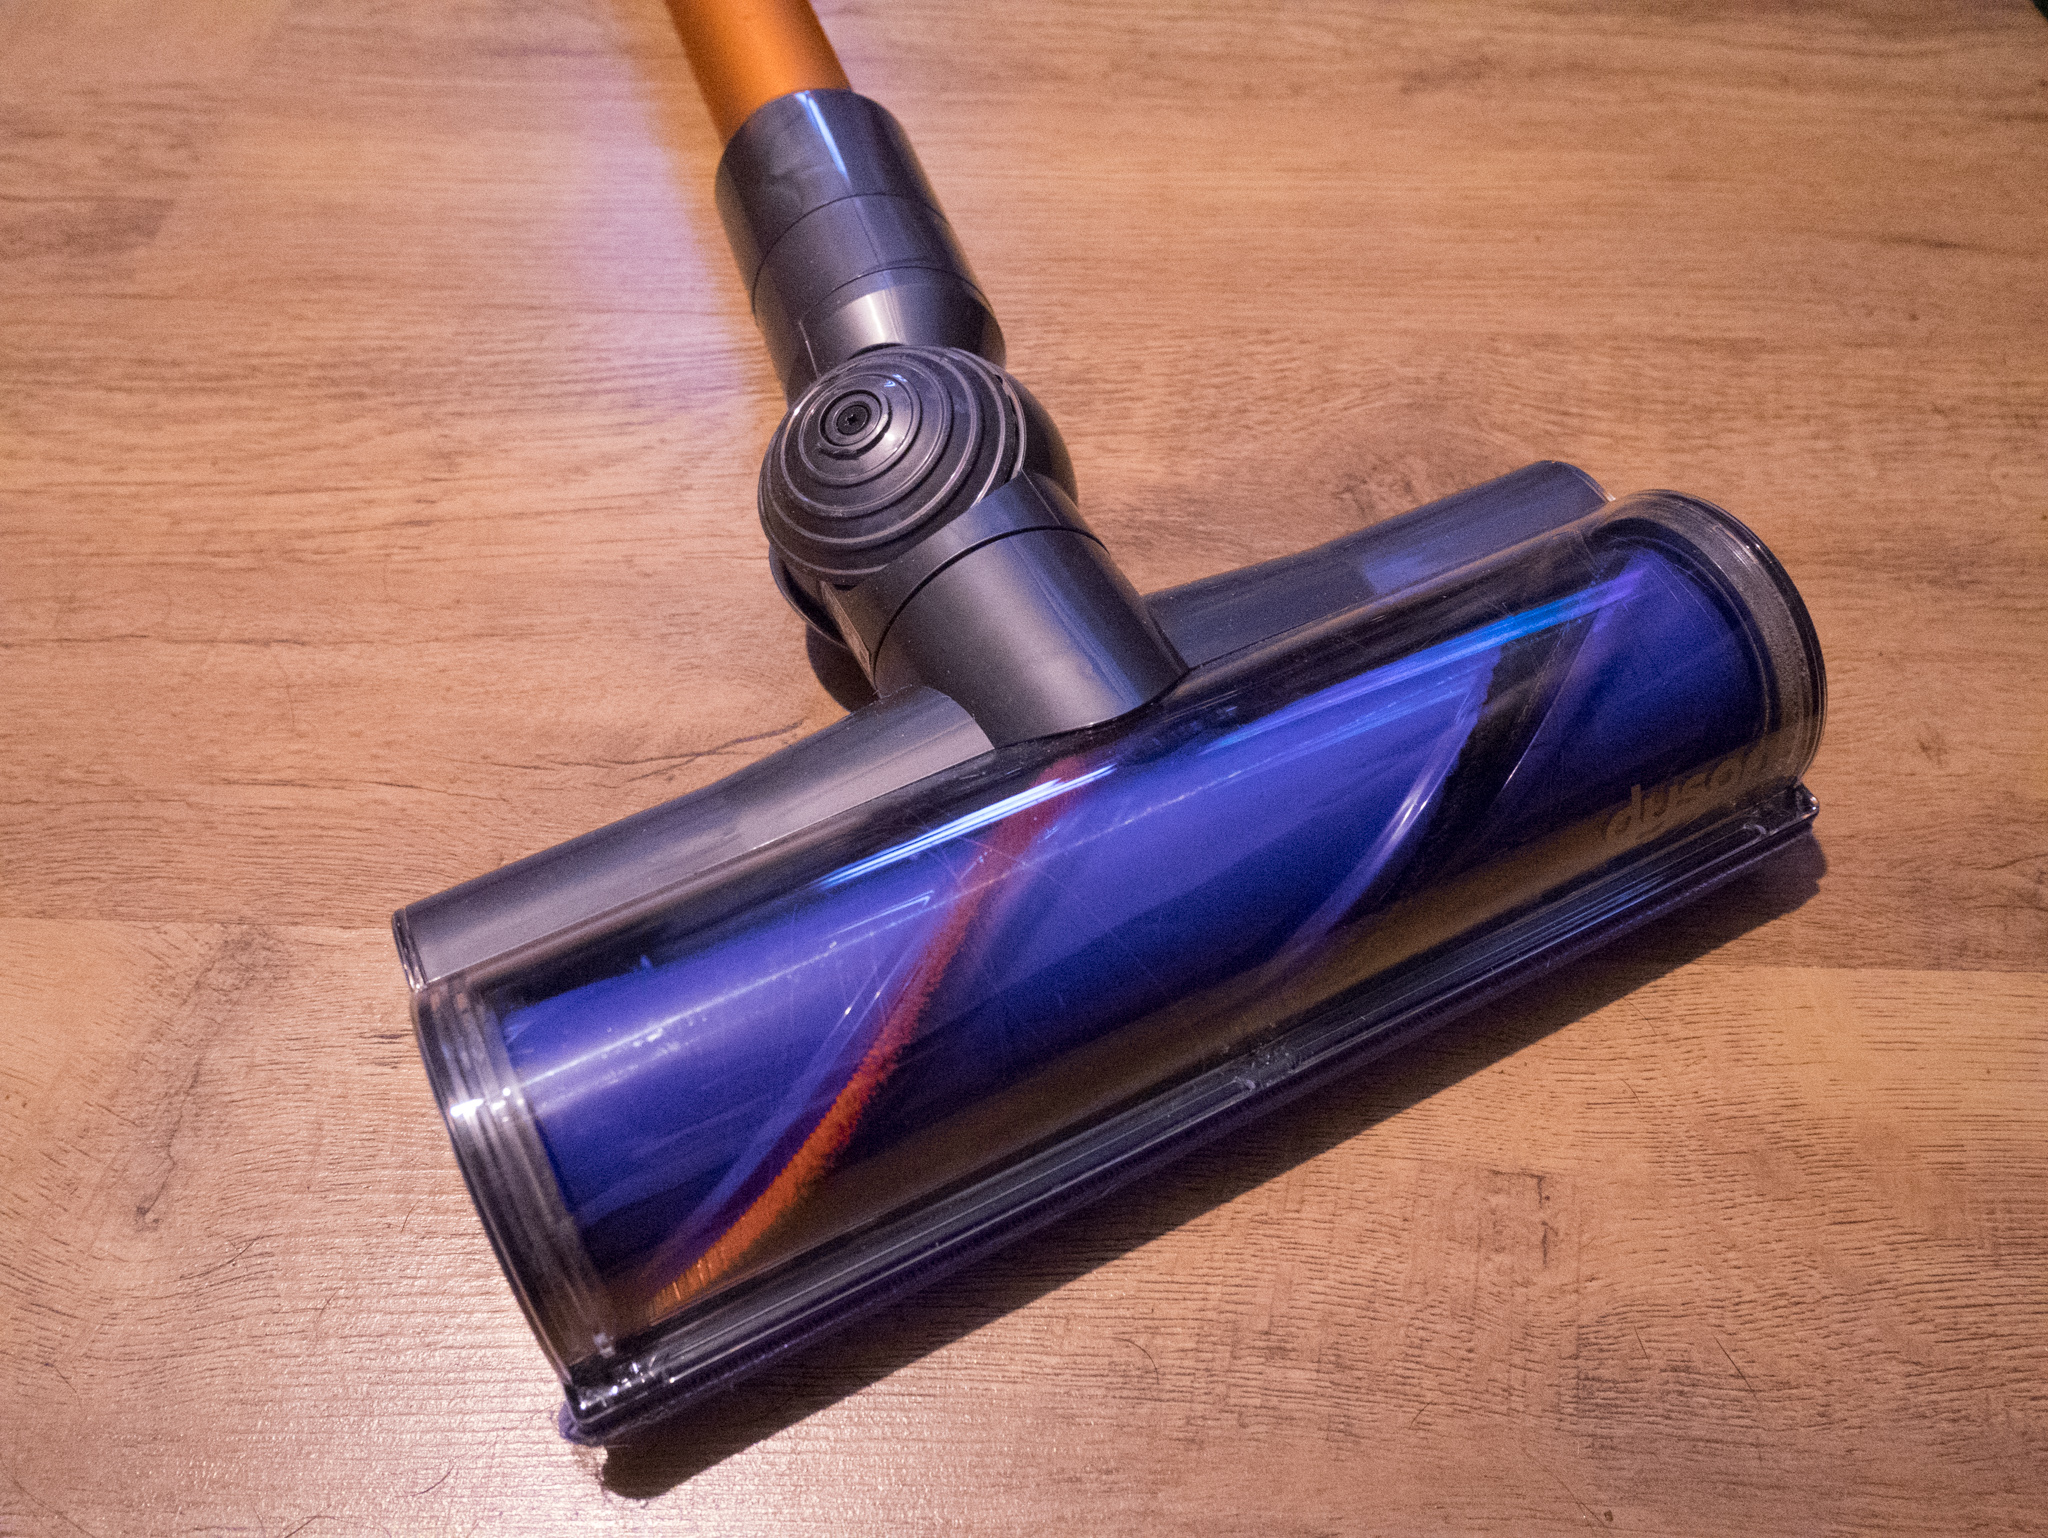 A review of the new Dyson V8 Absolute cordless vacuum cleaner – Is it worth it?